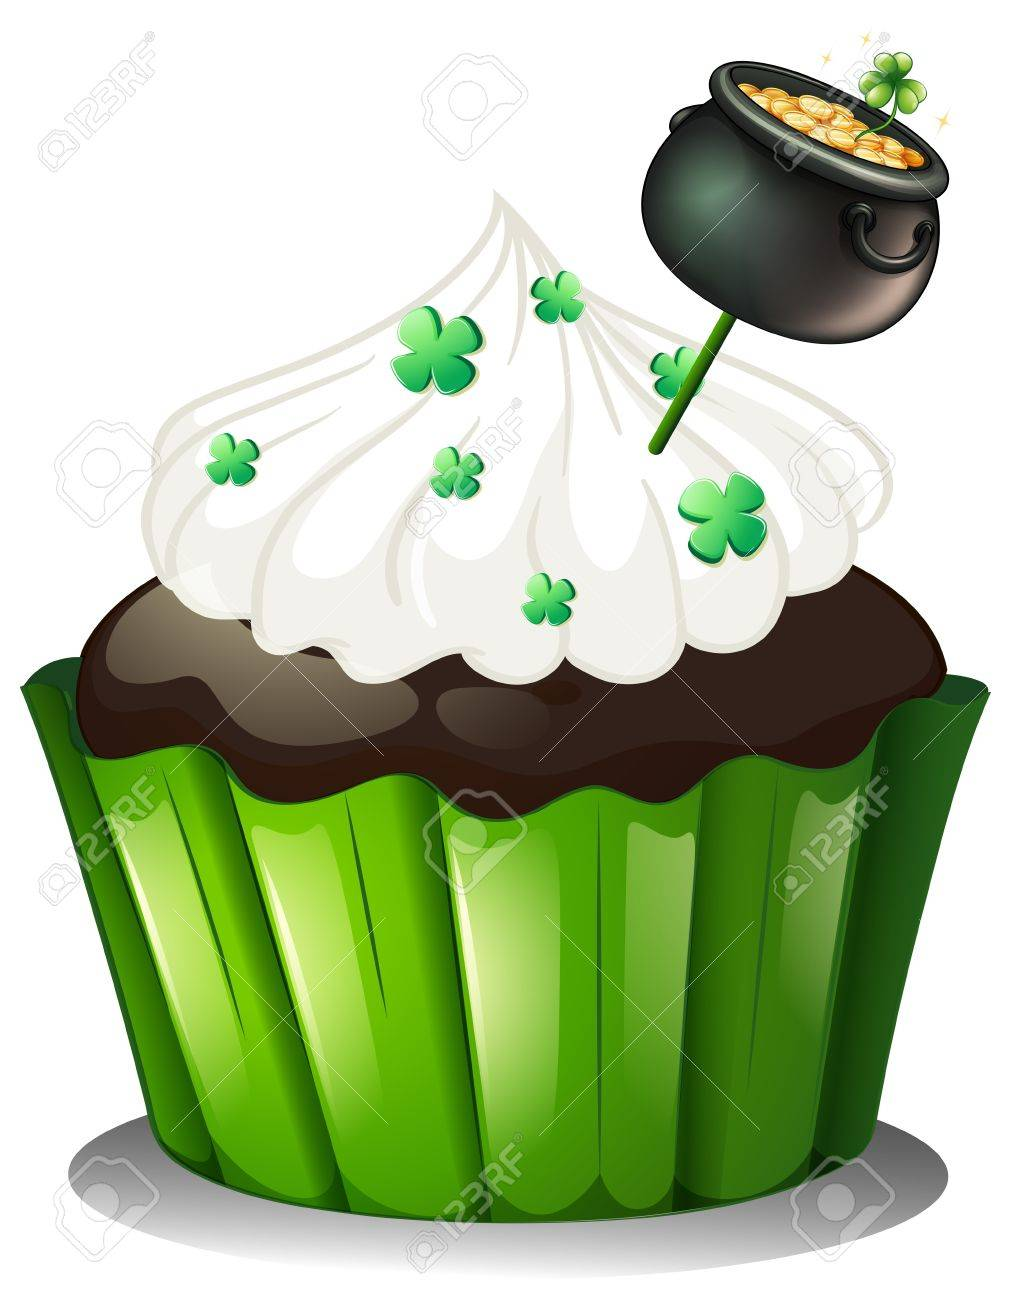 Illustration of a chocolate cupcake with a pot full of coins on a white background Stock Vector - 18458246